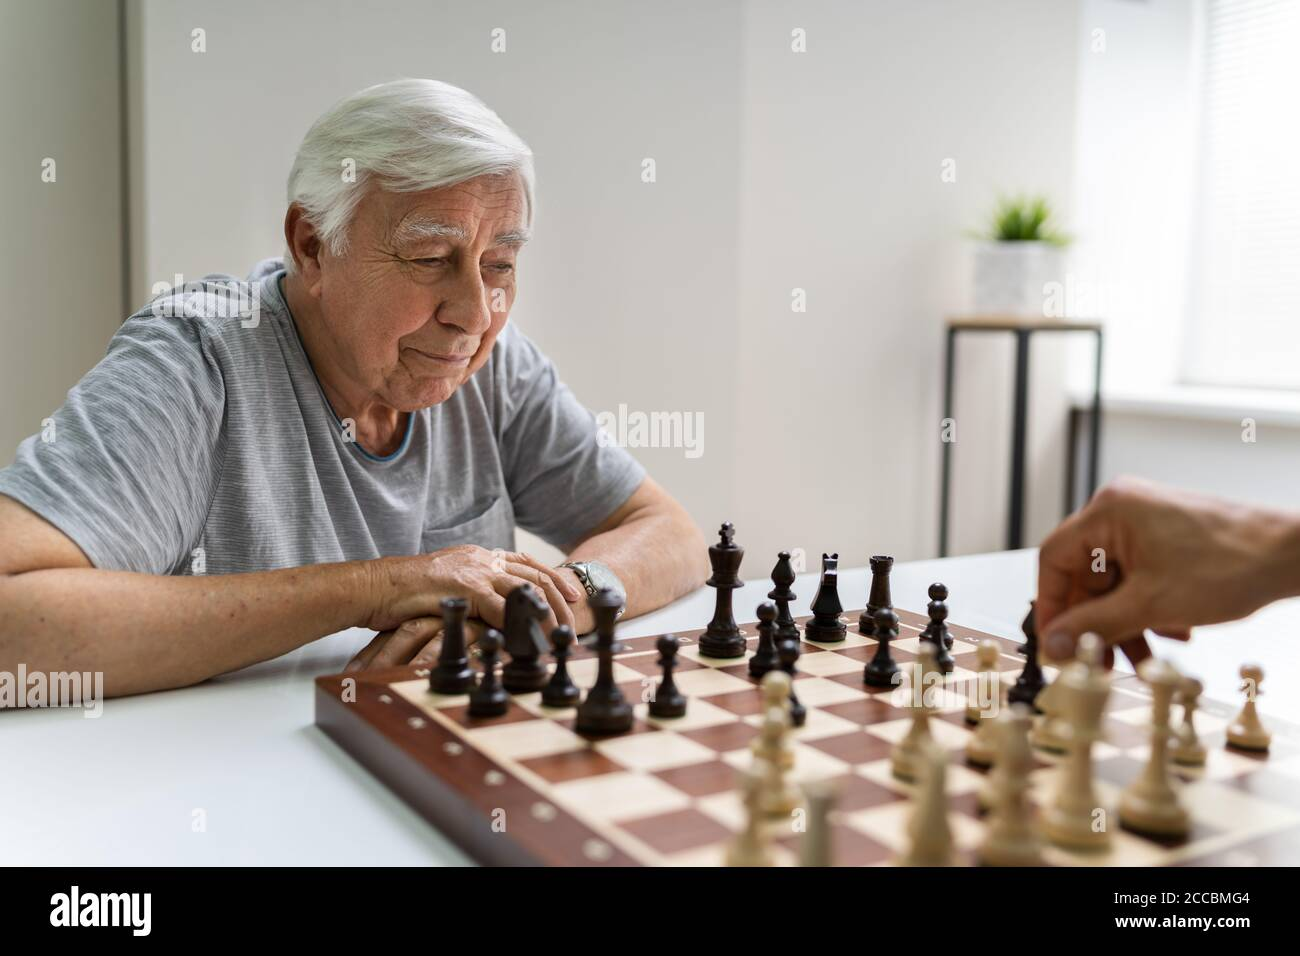 Elderly Senior Playing Chess Table Board Game Stock Photo Alamy